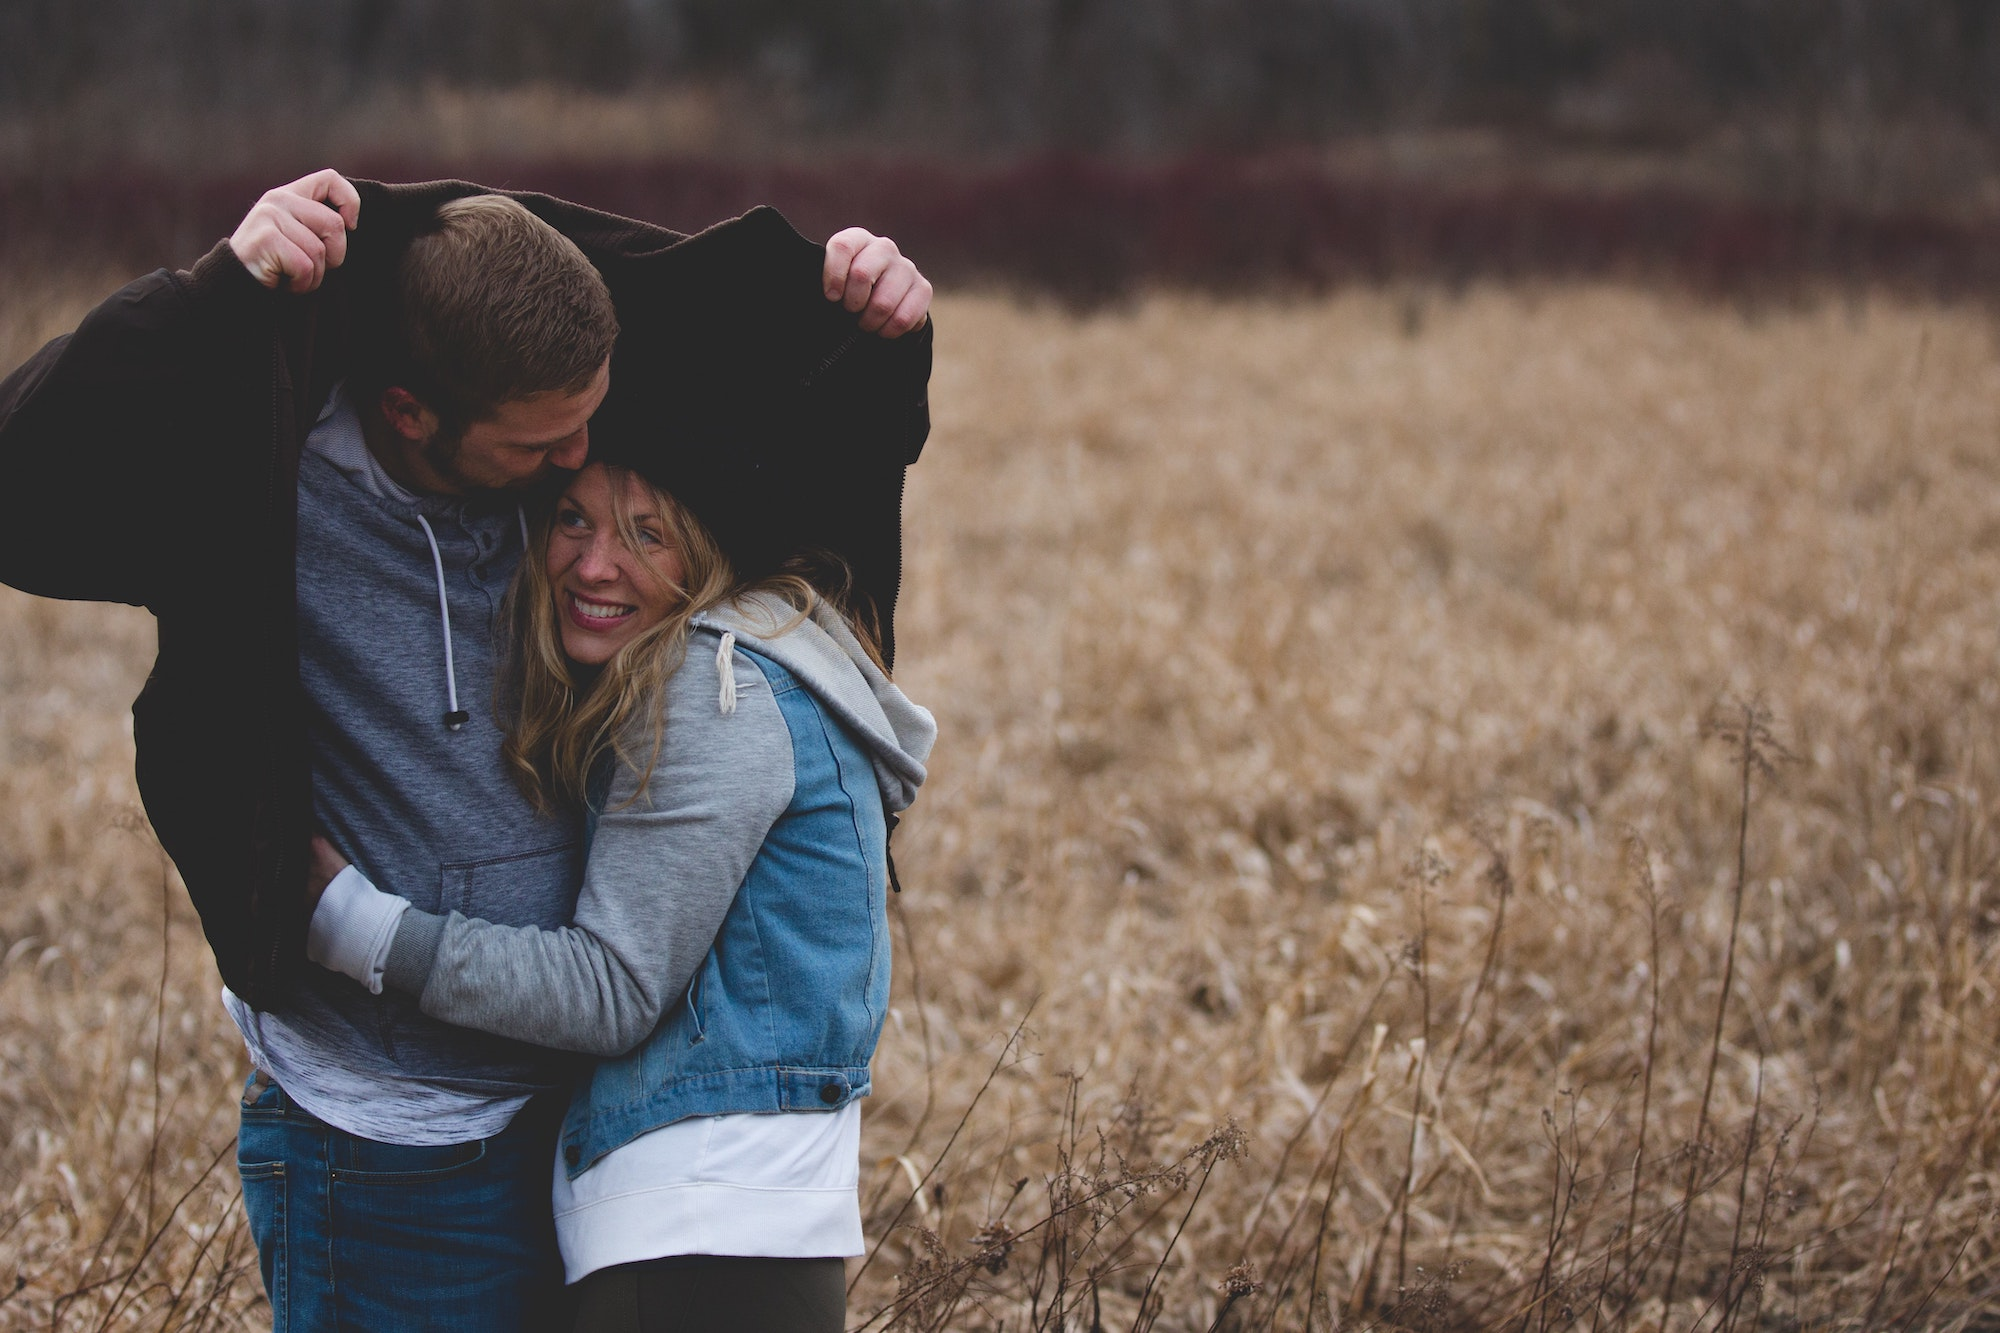 Can online intimacy replace physical intimacy? We look at online dating | Elle Blonde Luxury Lifestyle Destination Blog